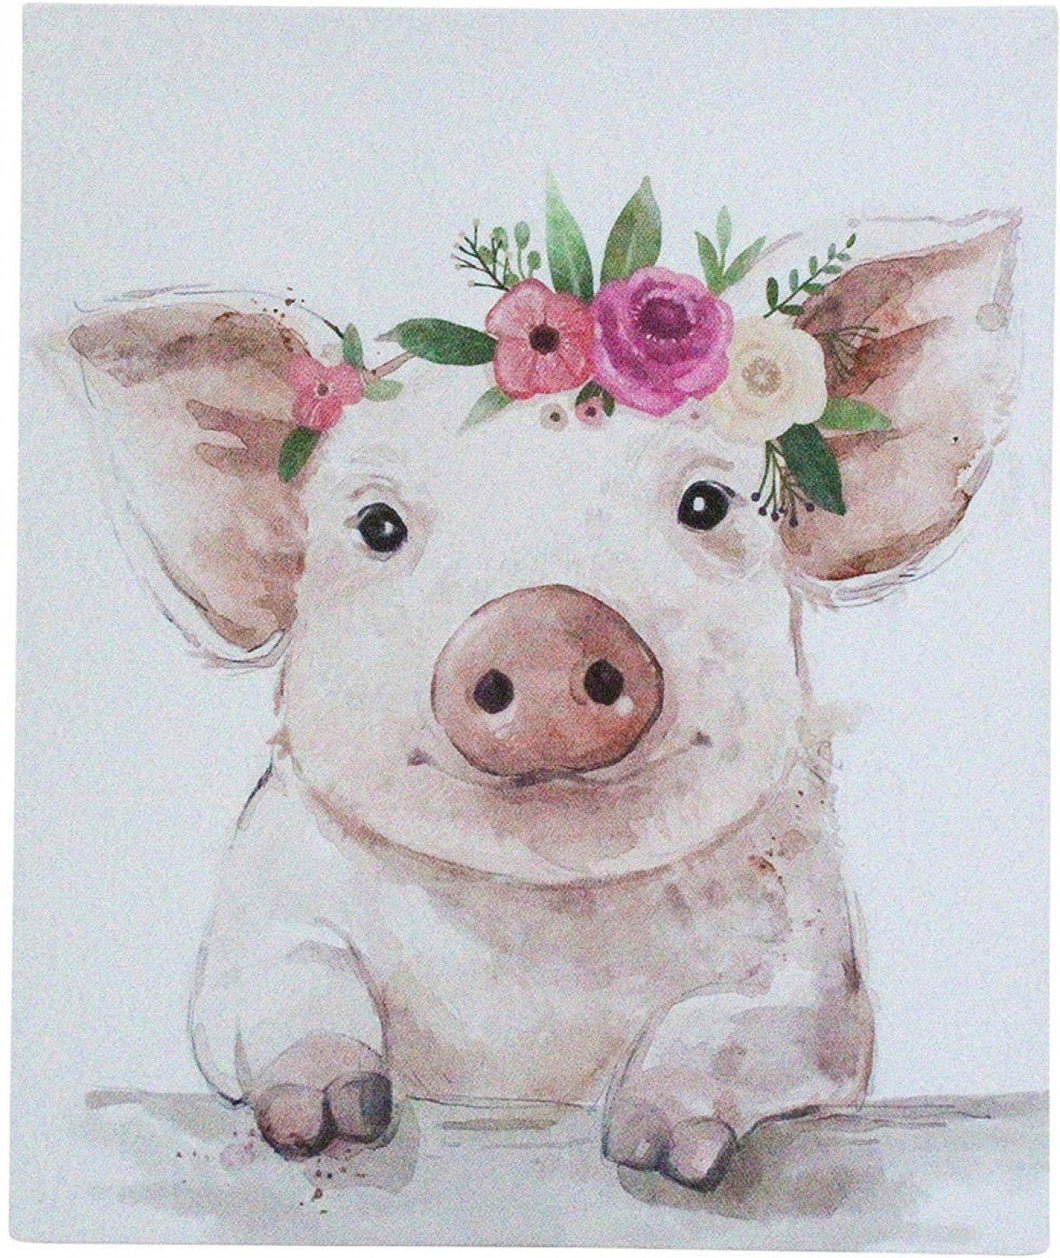 Lavida Wall Art Mini Pig Flowers - Global Free Style